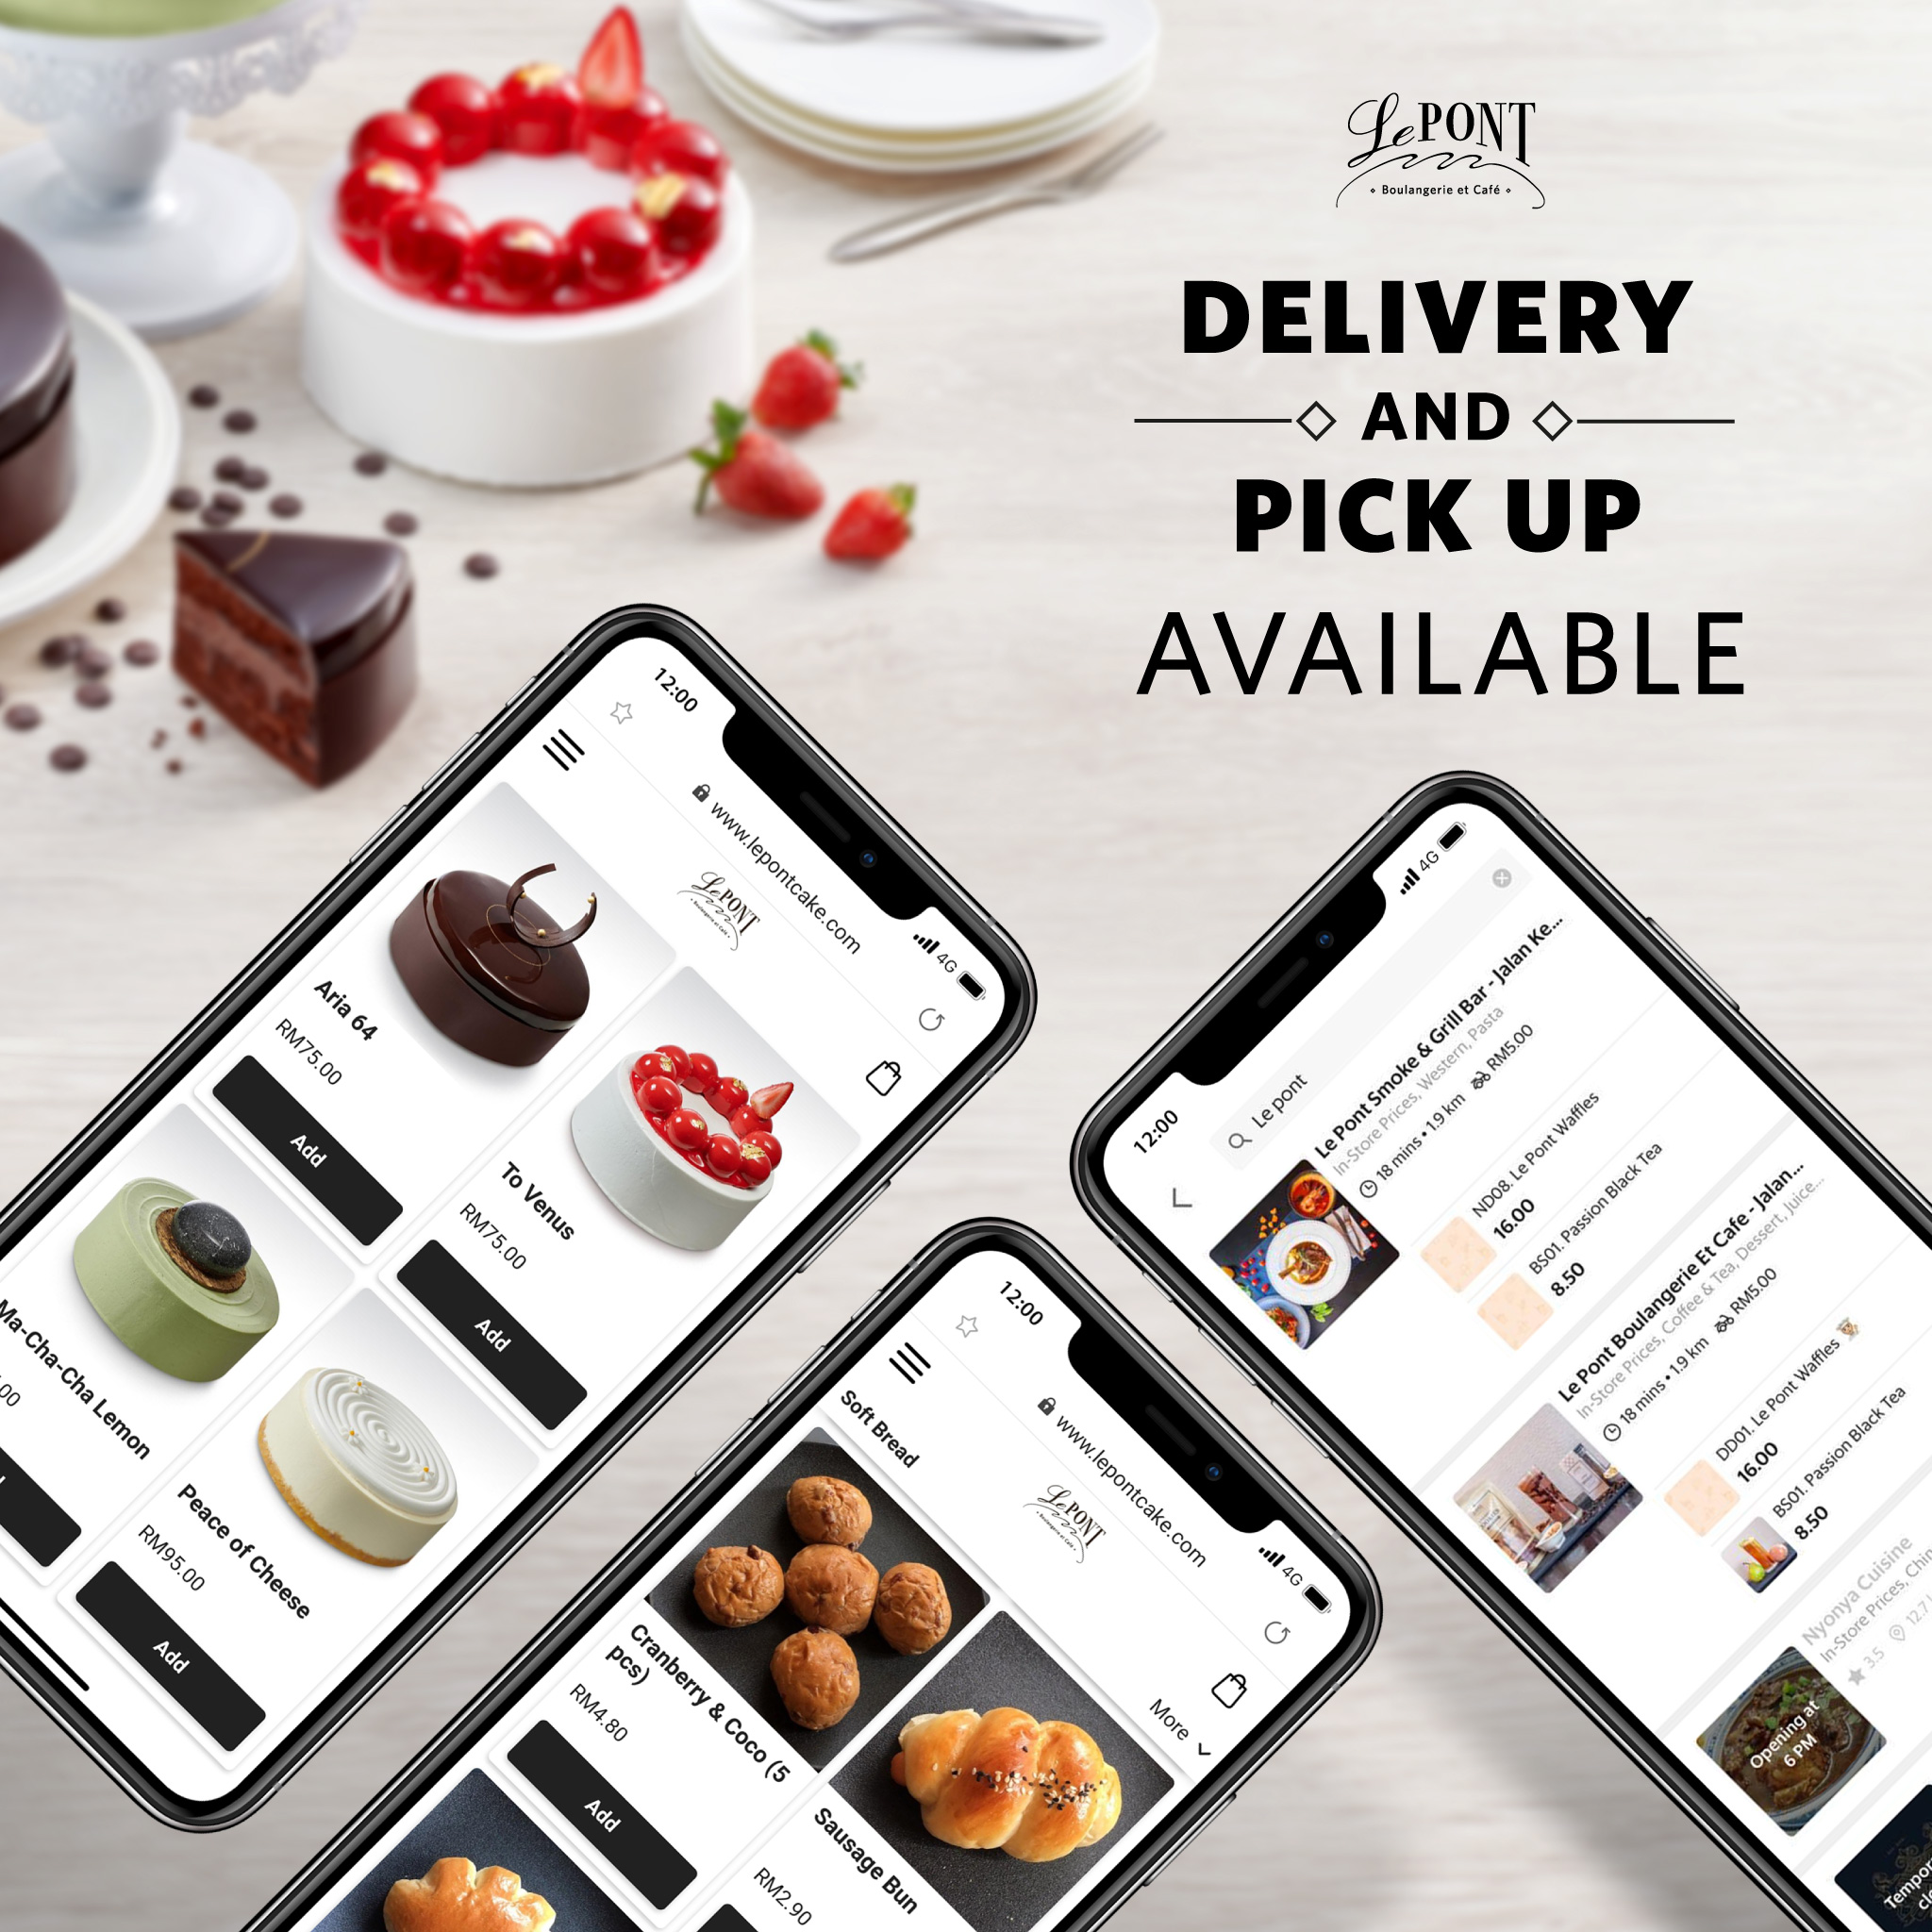 Delivery, Drive Thru Pick Up and Preorder